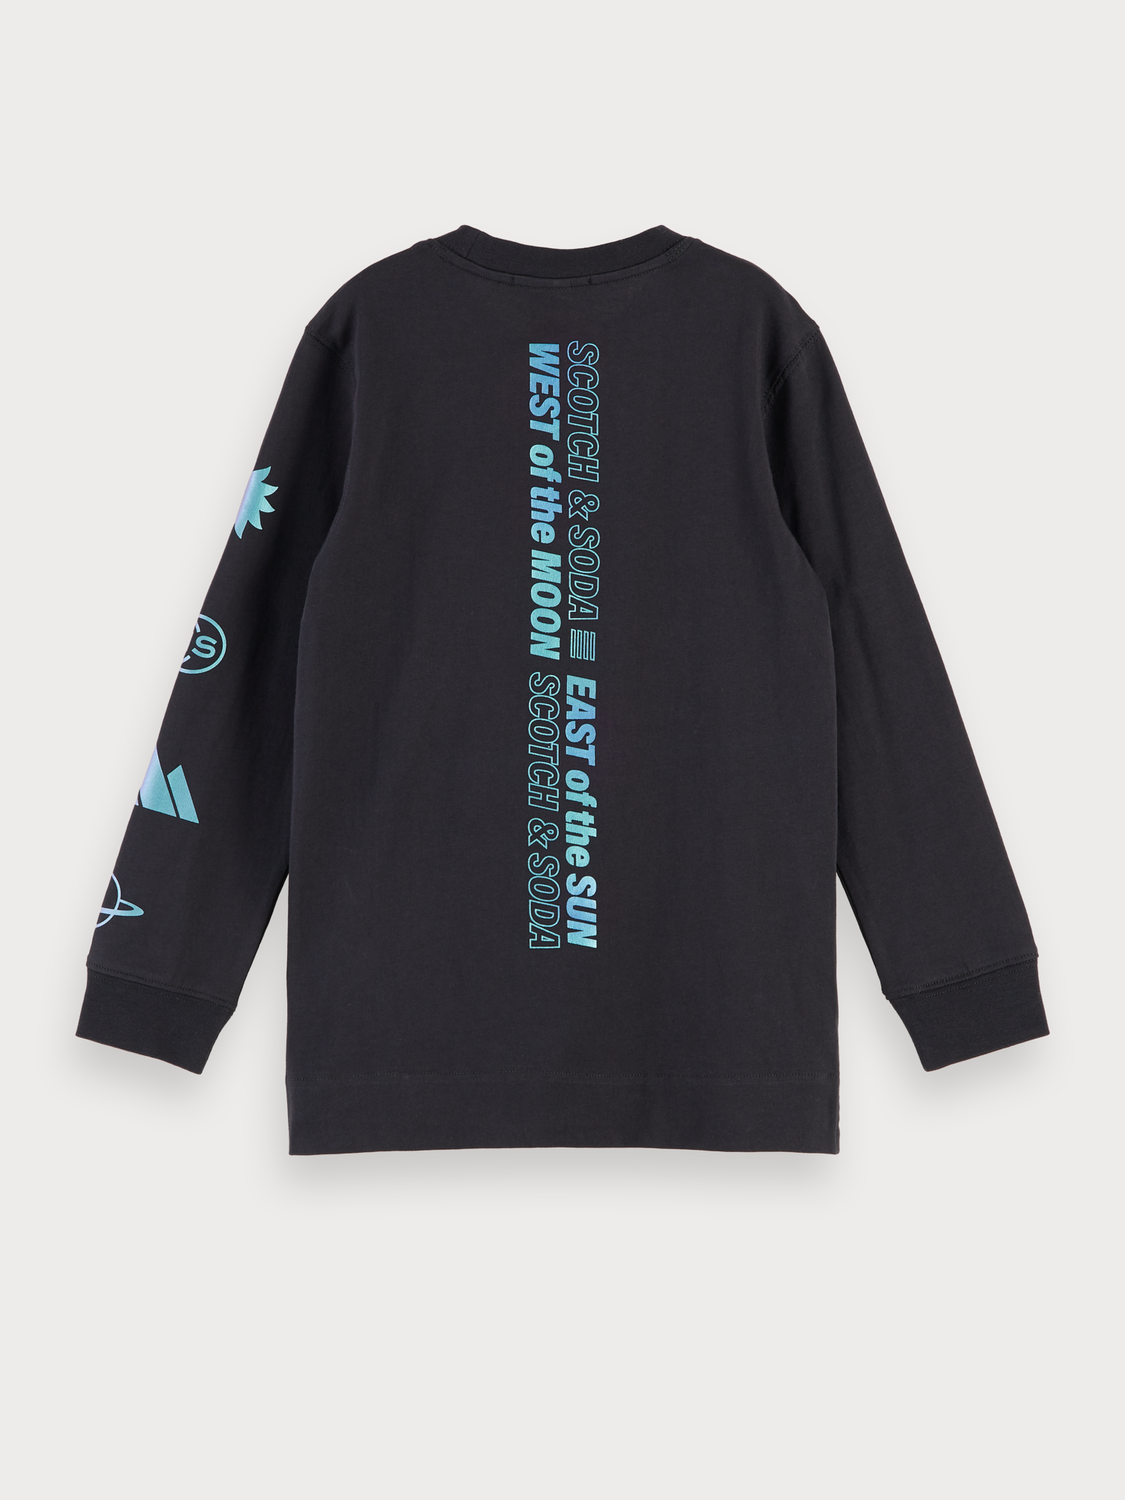 Boys 100% cotton long sleeve artwork t-shirt